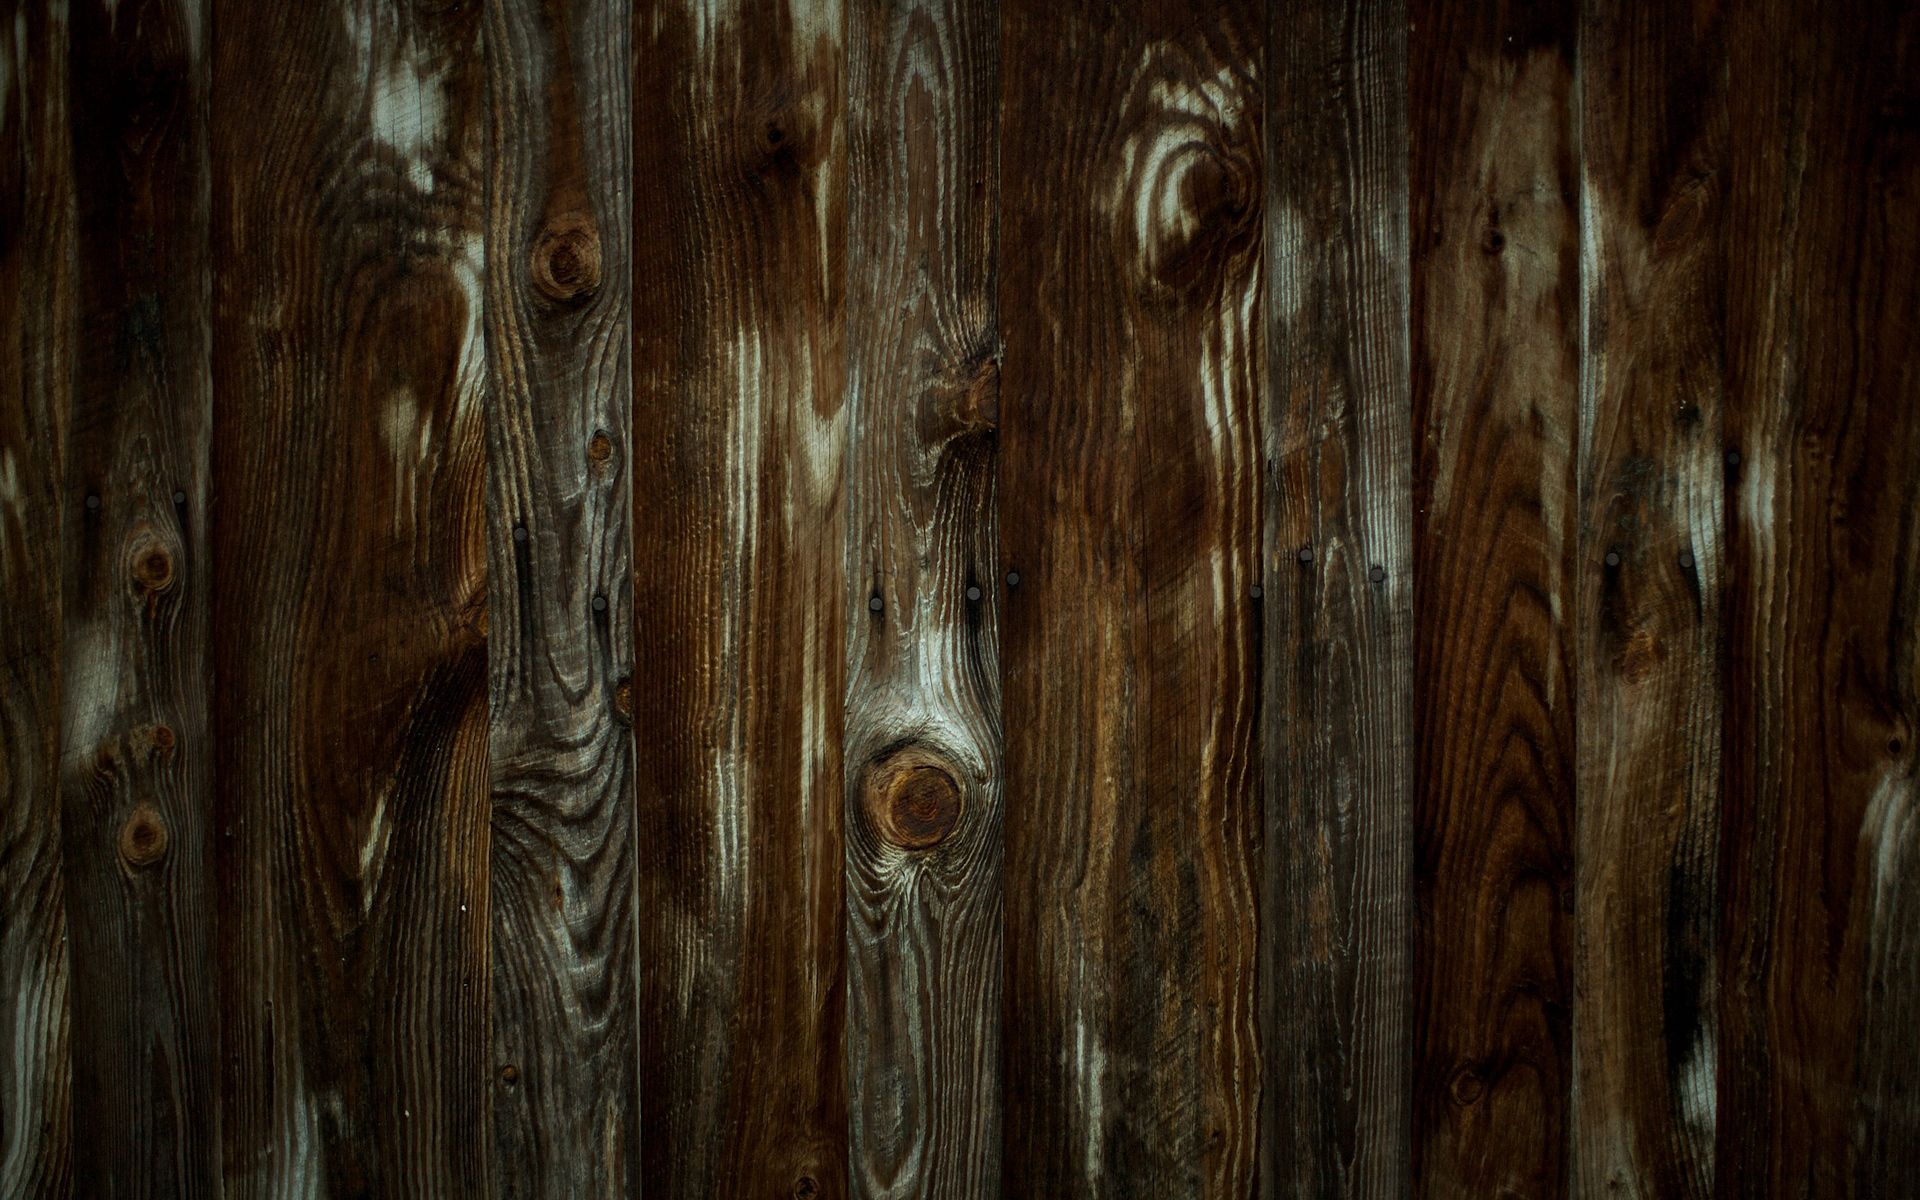 123973 download wallpaper Textures, Texture, Wood, Tree, Planks, Board, Wall, Wooden screensavers and pictures for free